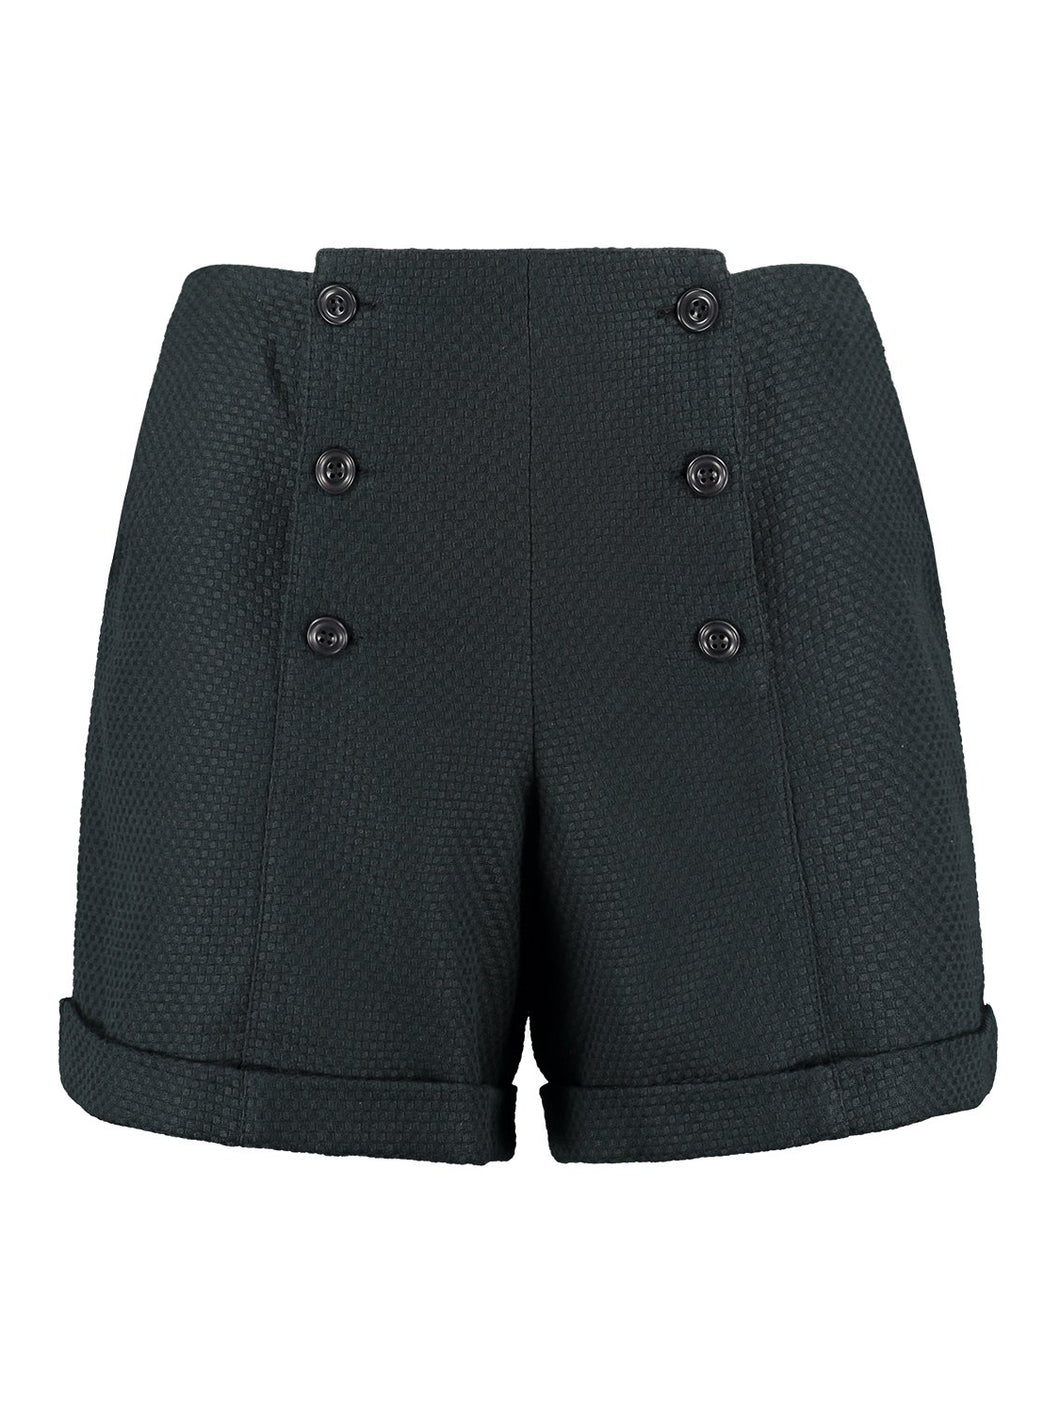 Tailored Shorts in Black Organic Cotton